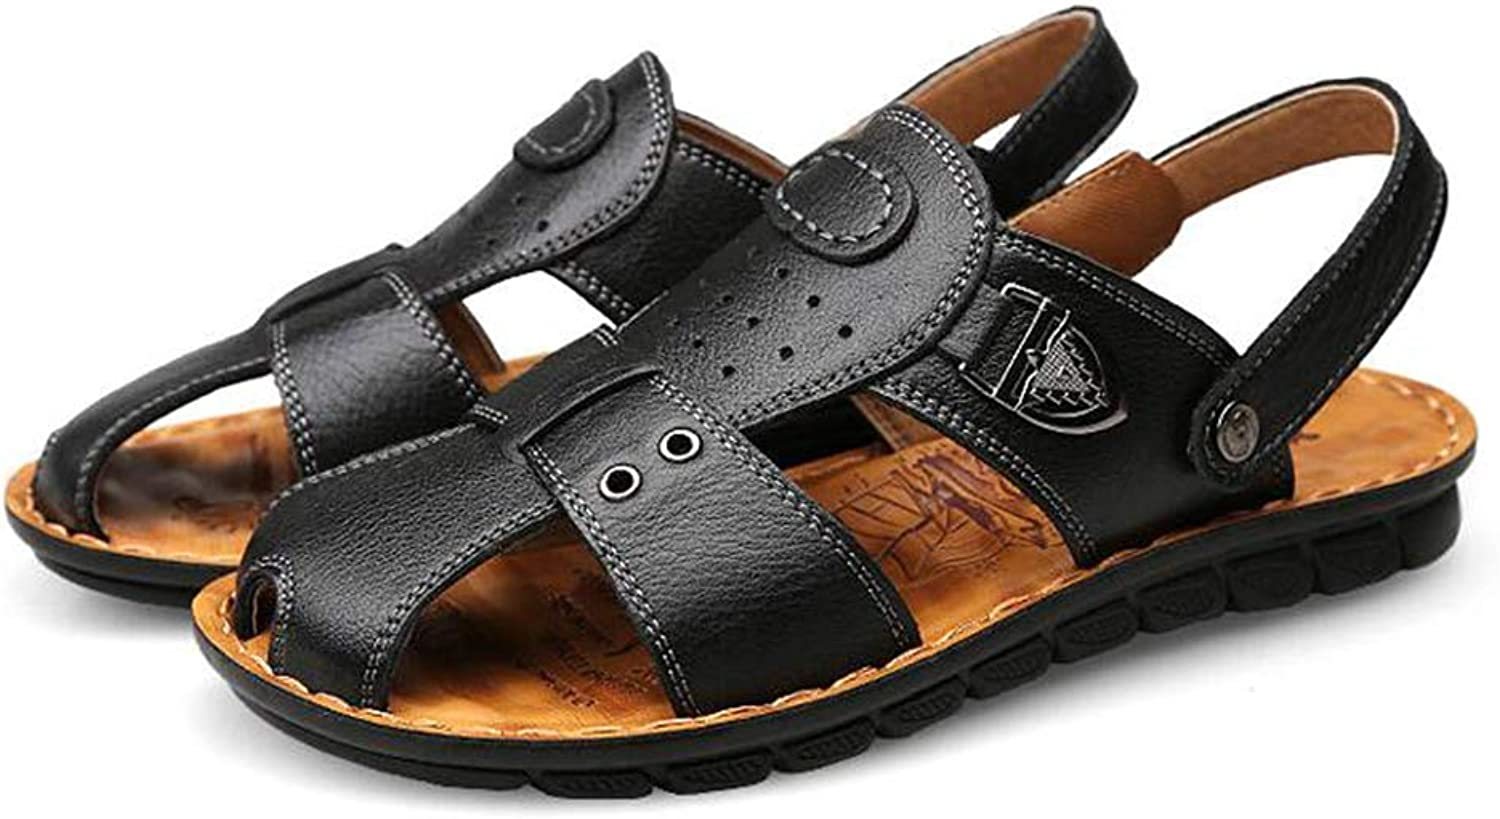 Y-H Men's Sandals Leather Fisherman Breathable Summer Casual Adjustable Strap shoes Walking Beach Travel,Black,42